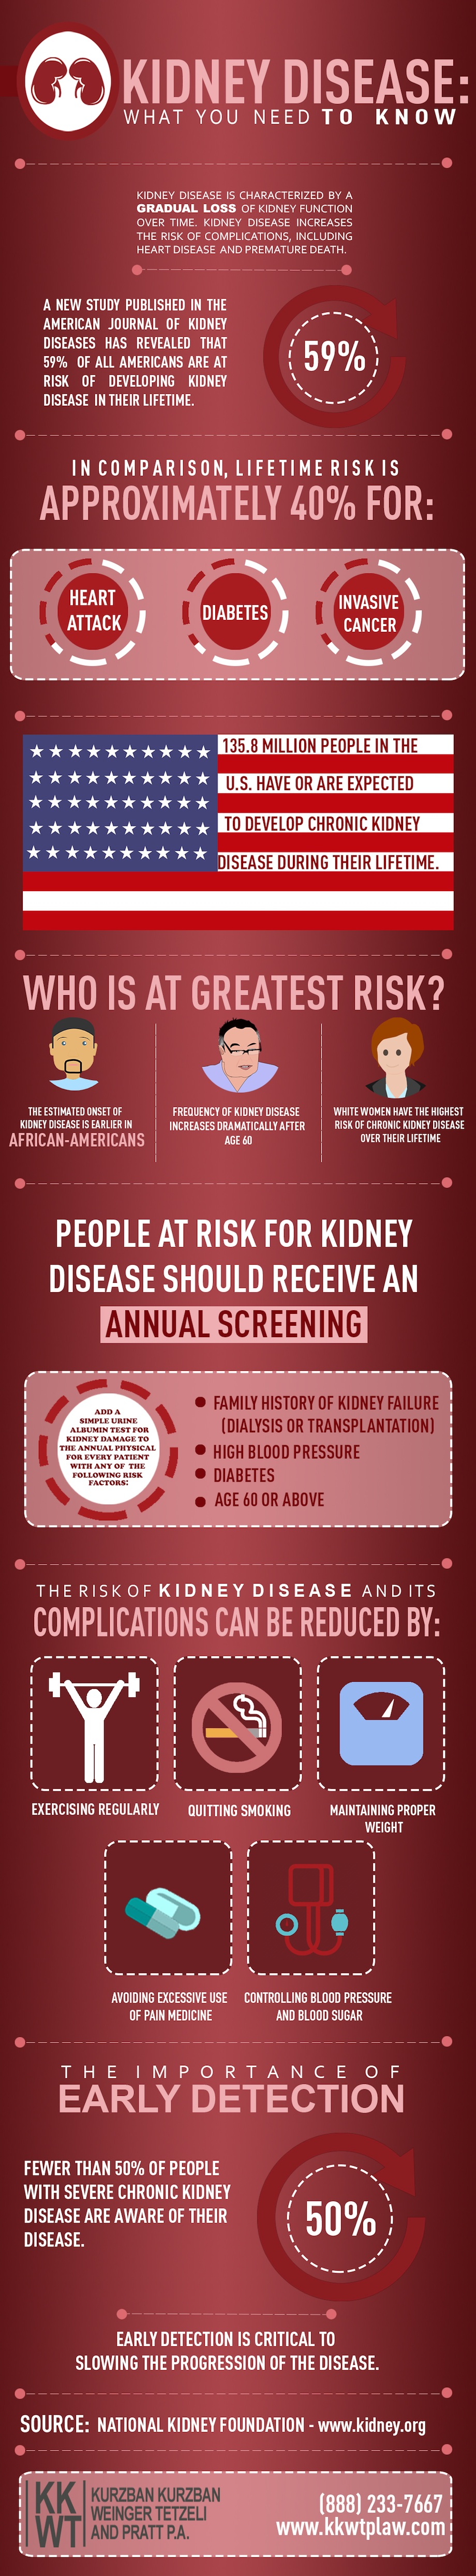 KIDNEY DISEASE- WHAT YOU NEED TO KNOW